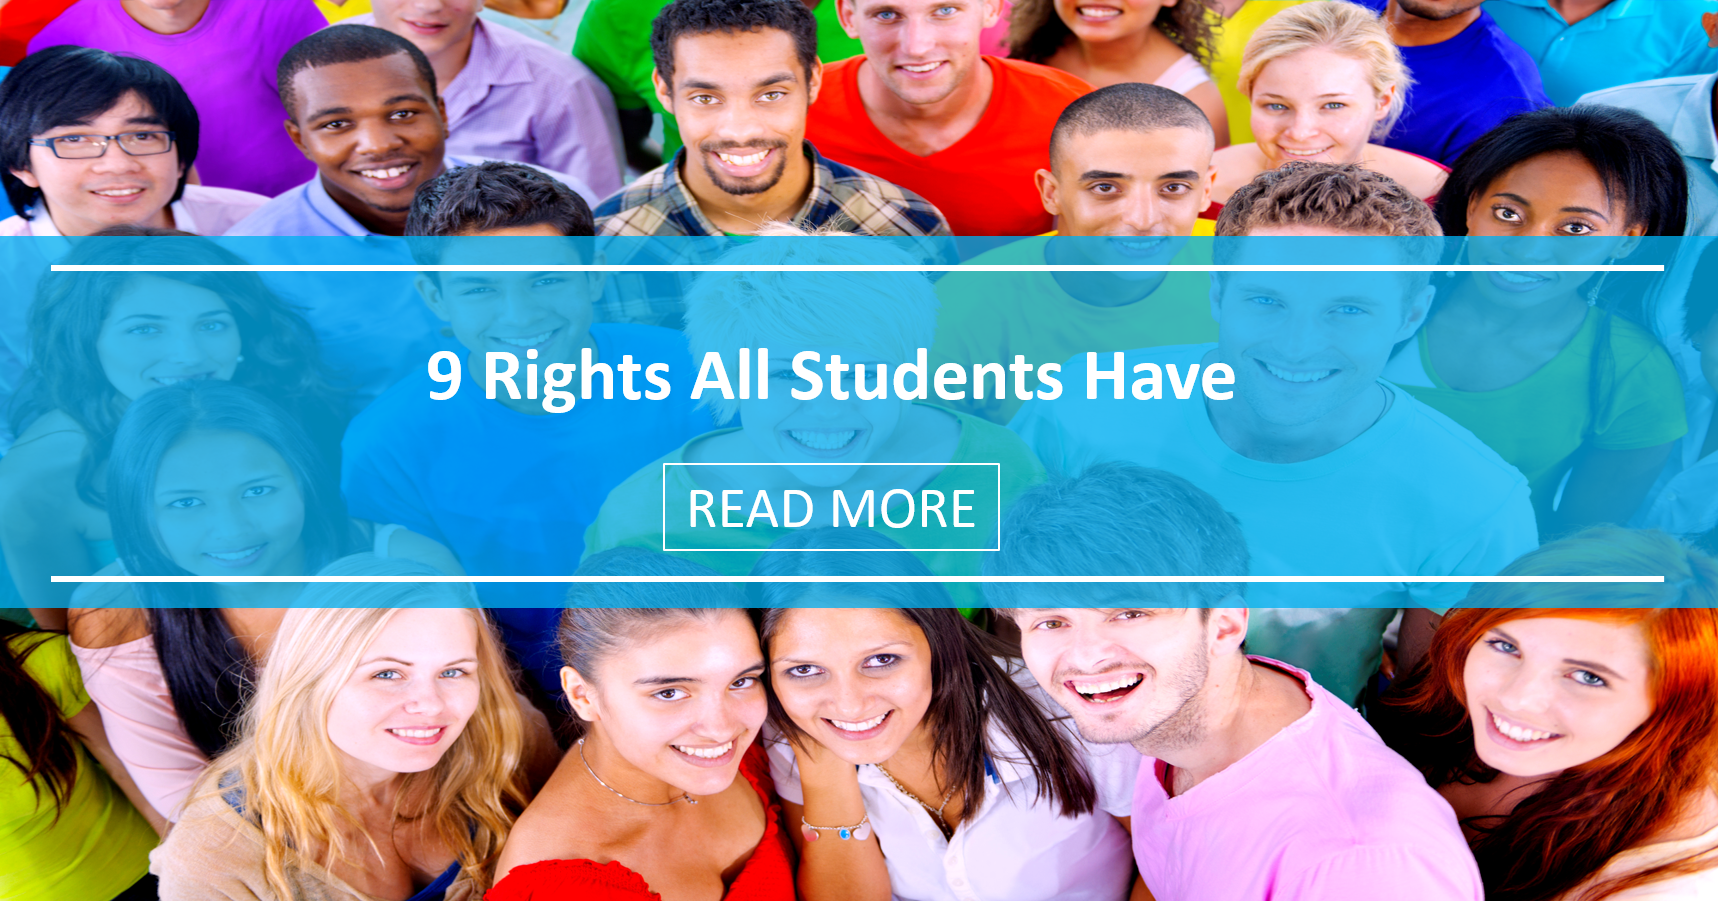 9 Rights All Students Have